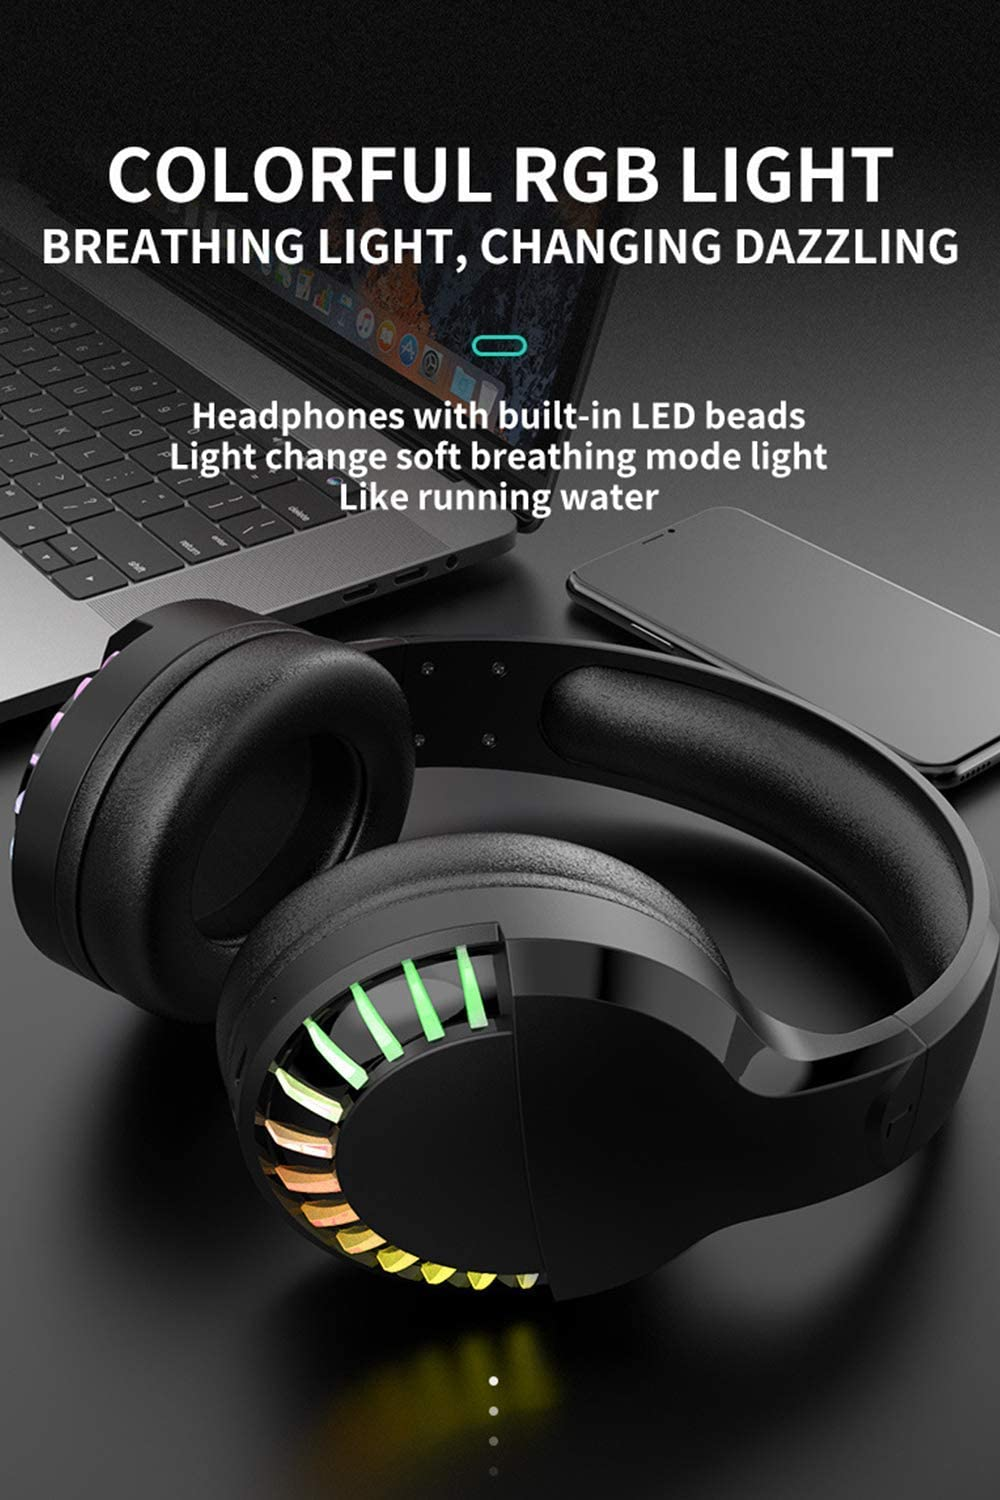 Low-latency Noise Reduction Headsets Are Suitable for Mobile Phones Laptops Ipads NGXIWW Gaming Headset Wireless In-ear Headphones with RGB Lighting